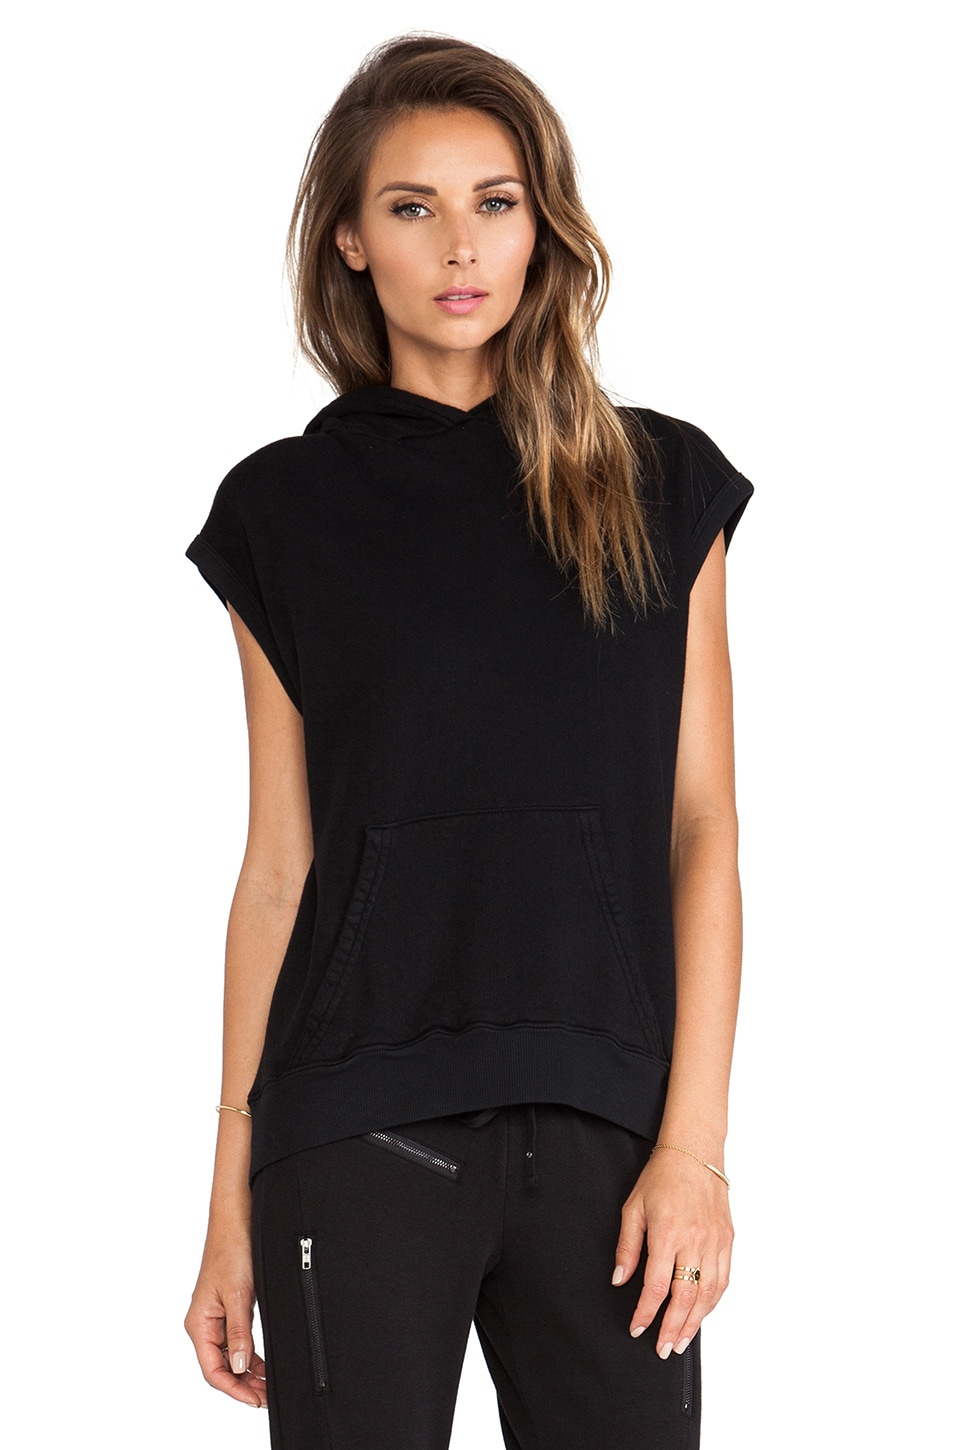 Pam & Gela Sleeveless Hooded Sweatshirt in Black